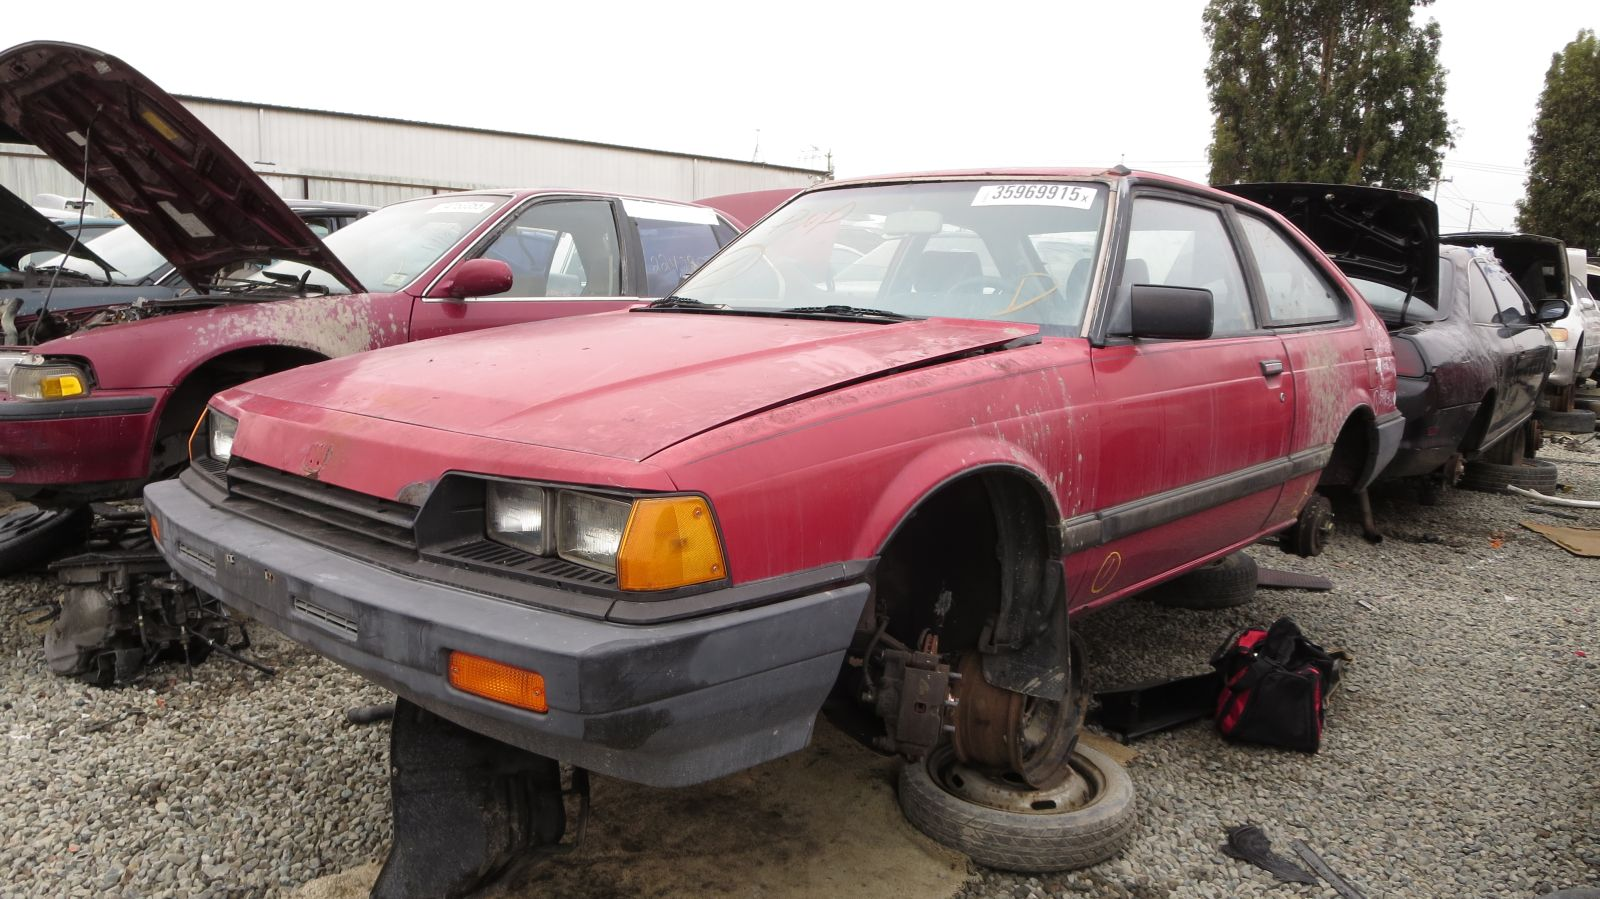 hight resolution of 1984 honda accord in california wrecking yard lh front view 2016 murilee martin